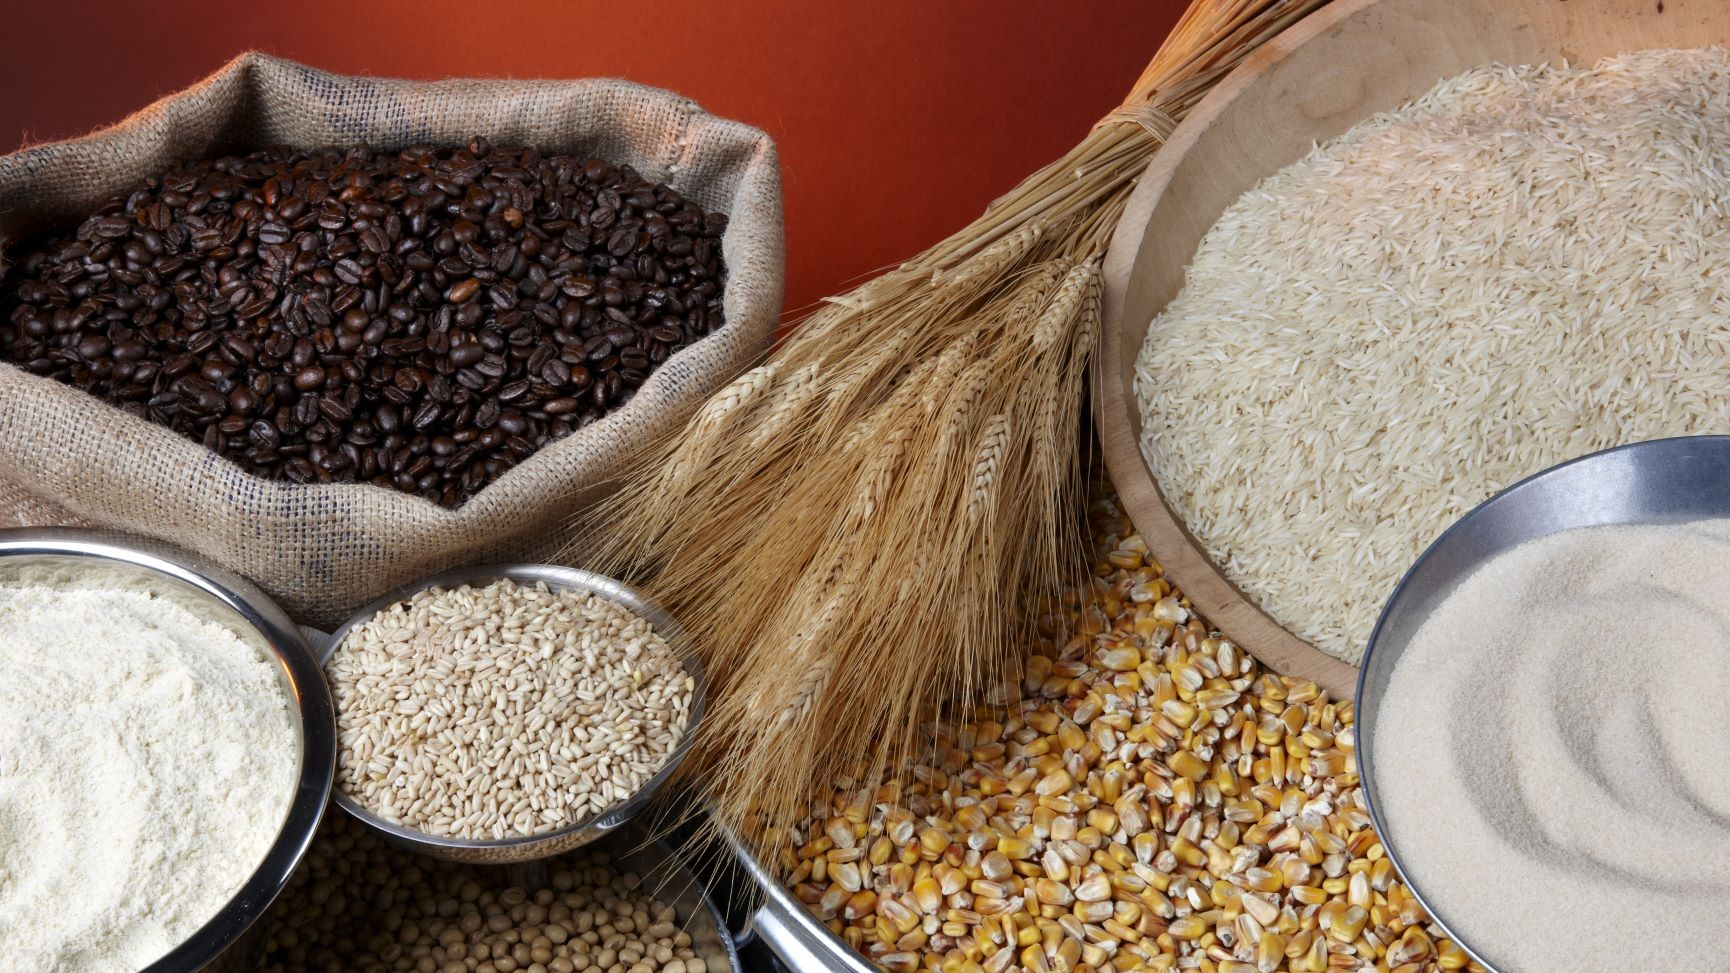 Commodities continue to rally, bolstering commodity supper-cycle bets